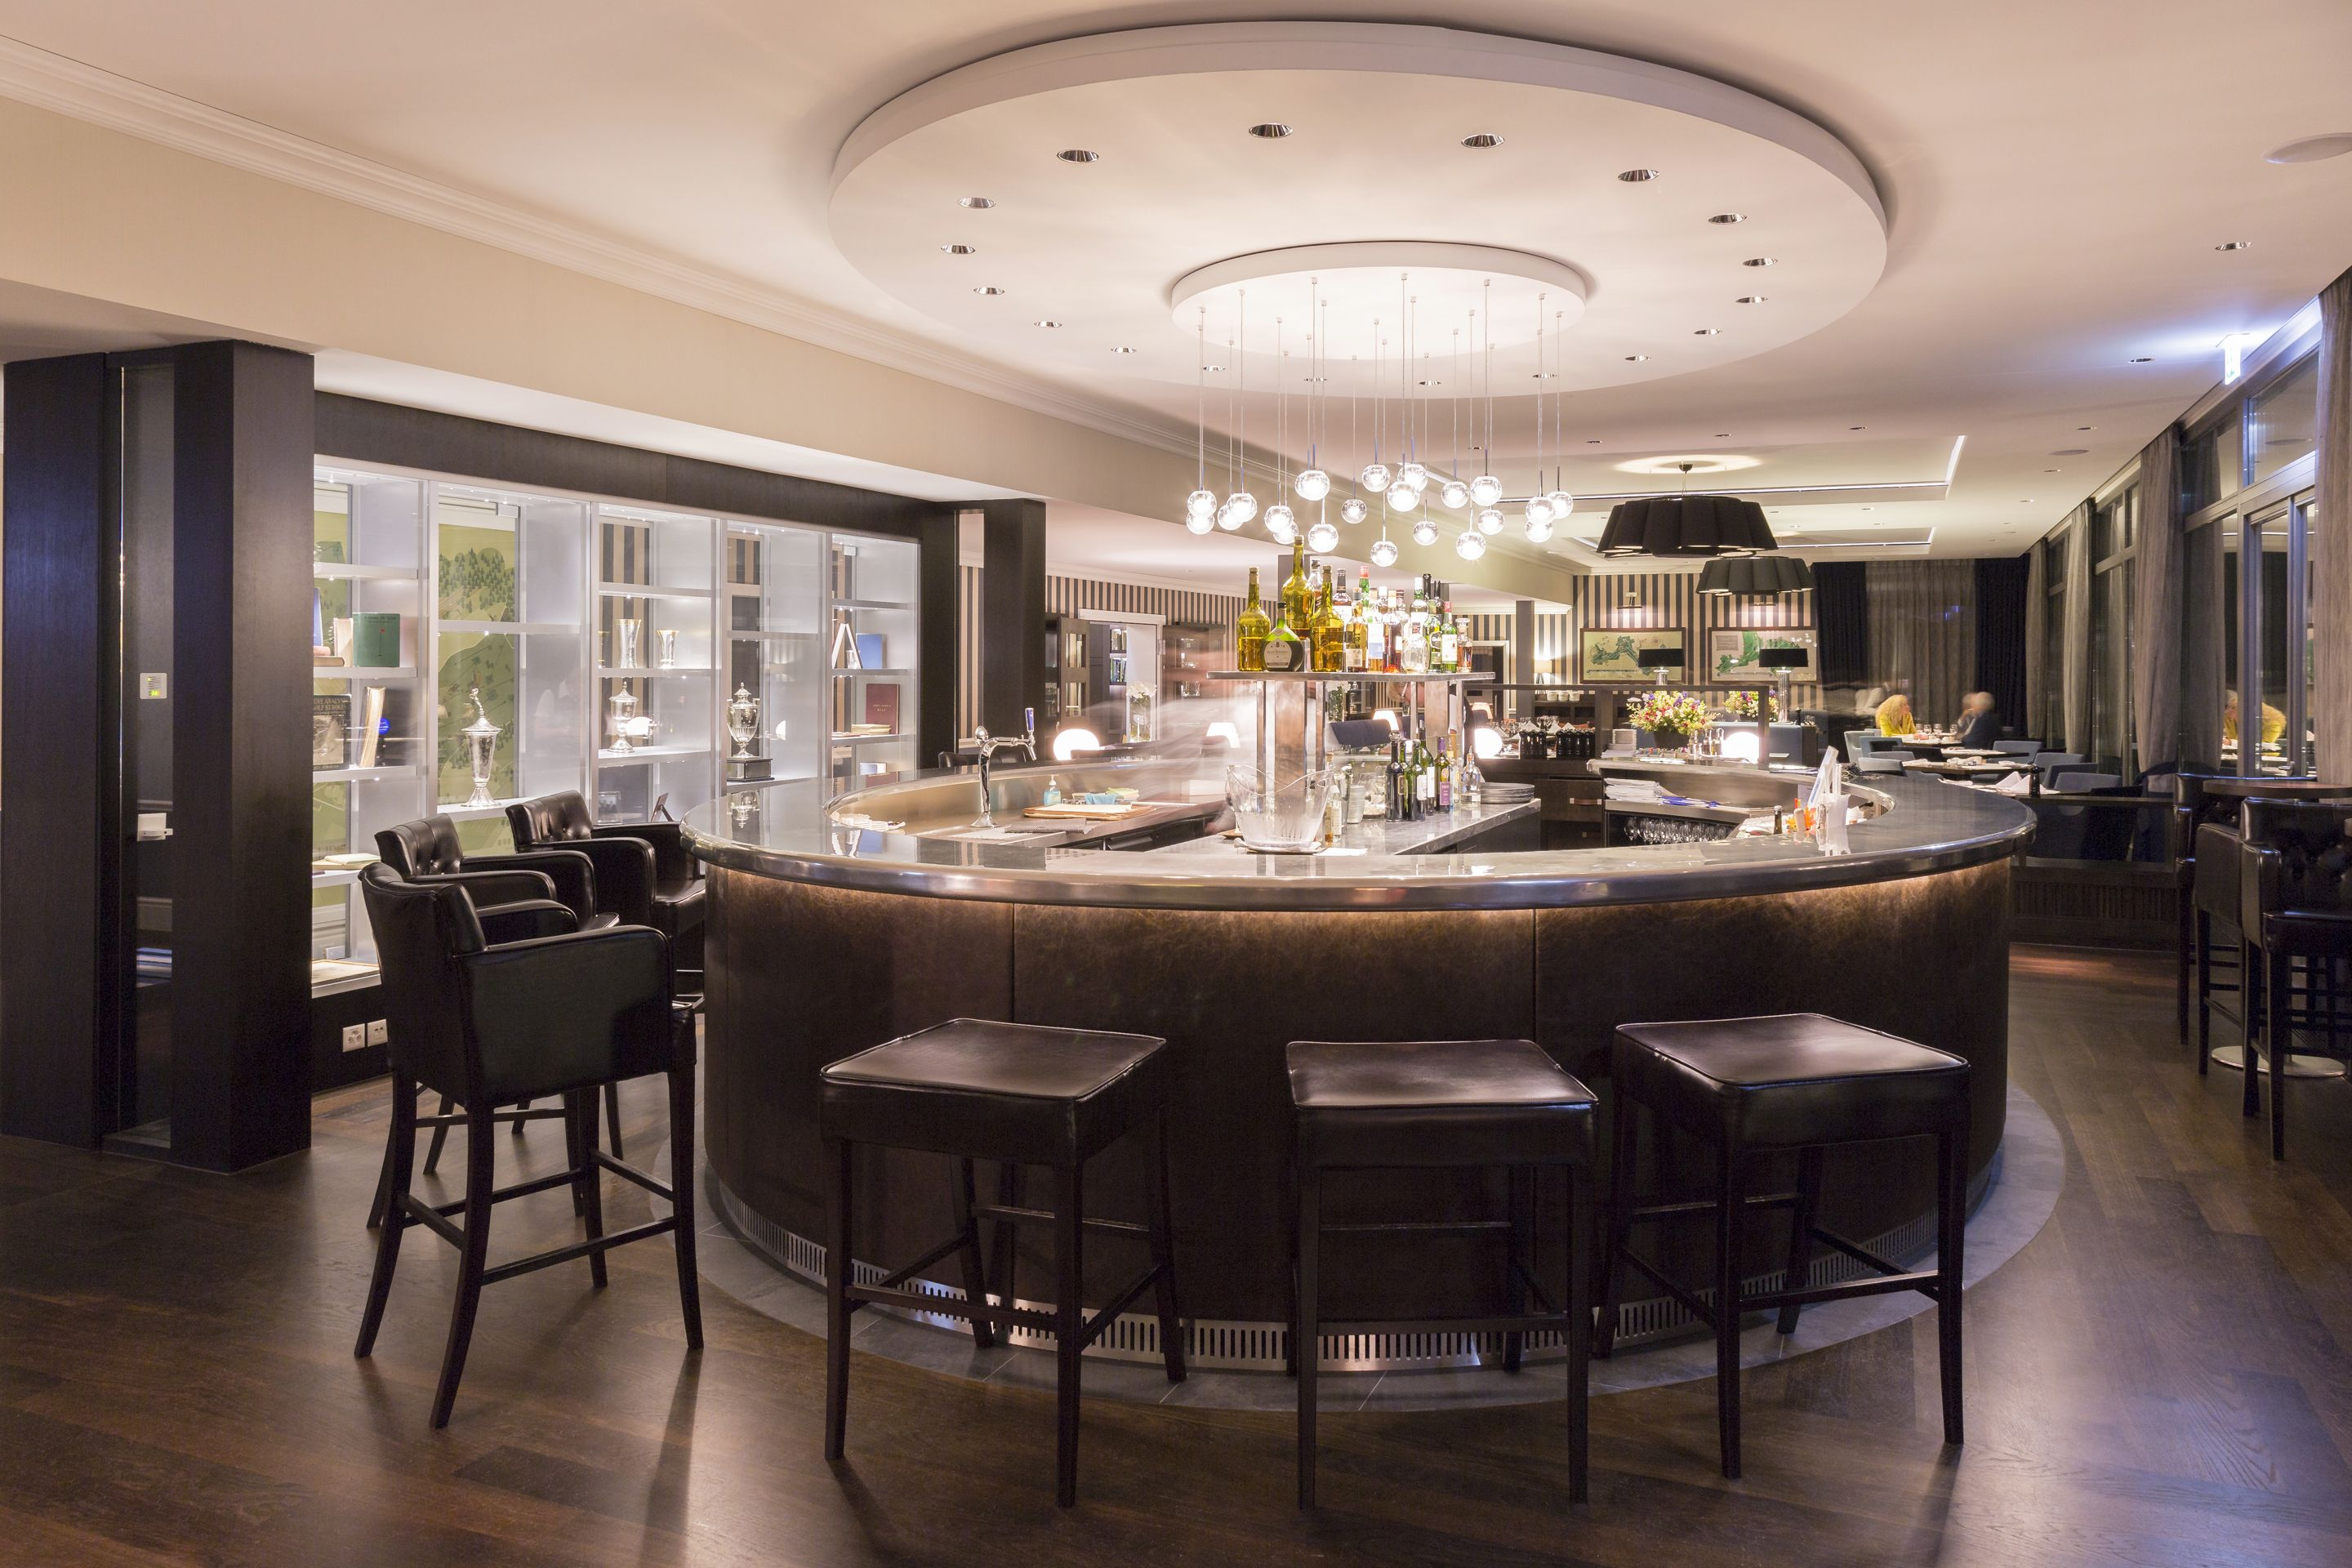 Golf Country Club Zurich Club House Game Room Bar Interior Architecture